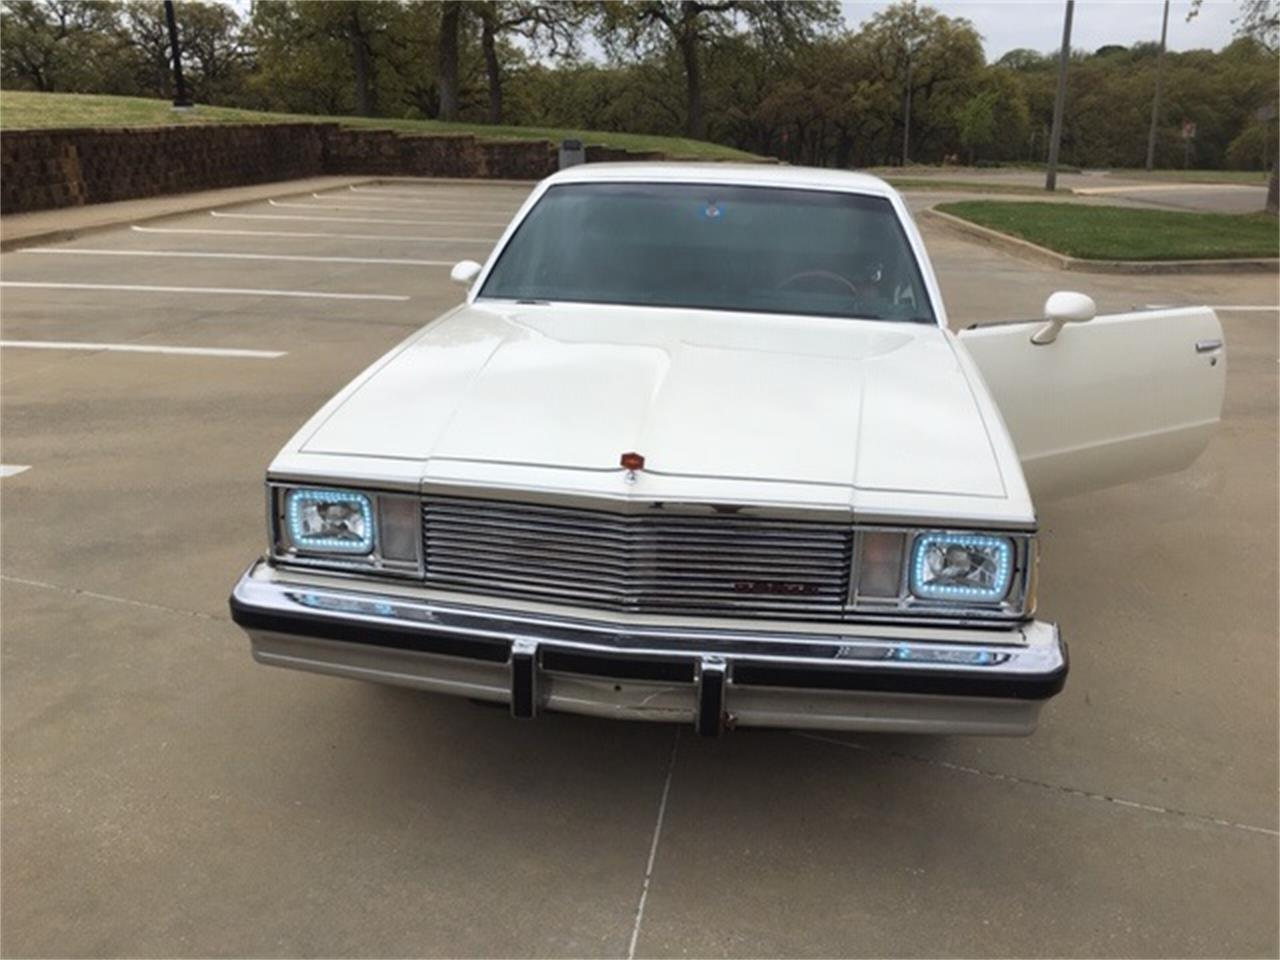 Large Picture of 1981 Chevrolet El Camino Offered by a Private Seller - PR95